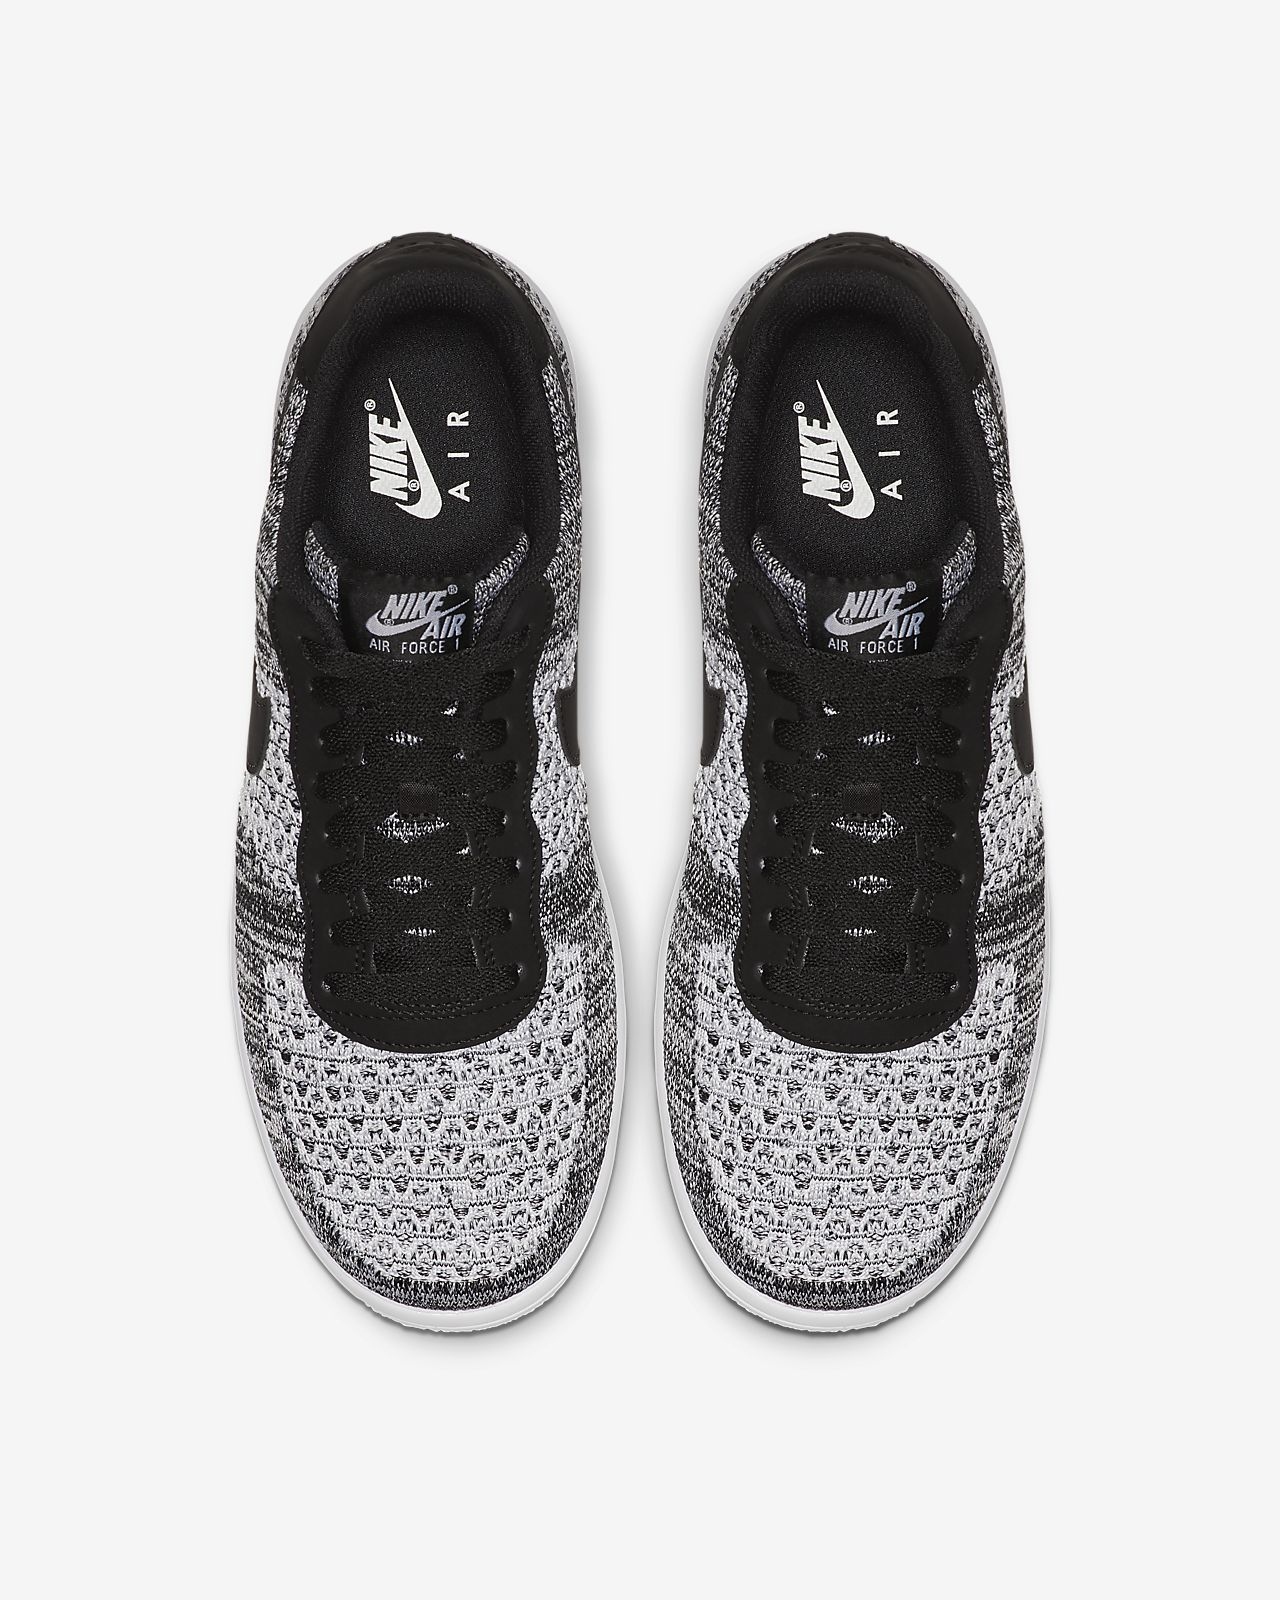 Force 1 Air Flyknit 0 Nike Shoe 2 N8kn0wOXP